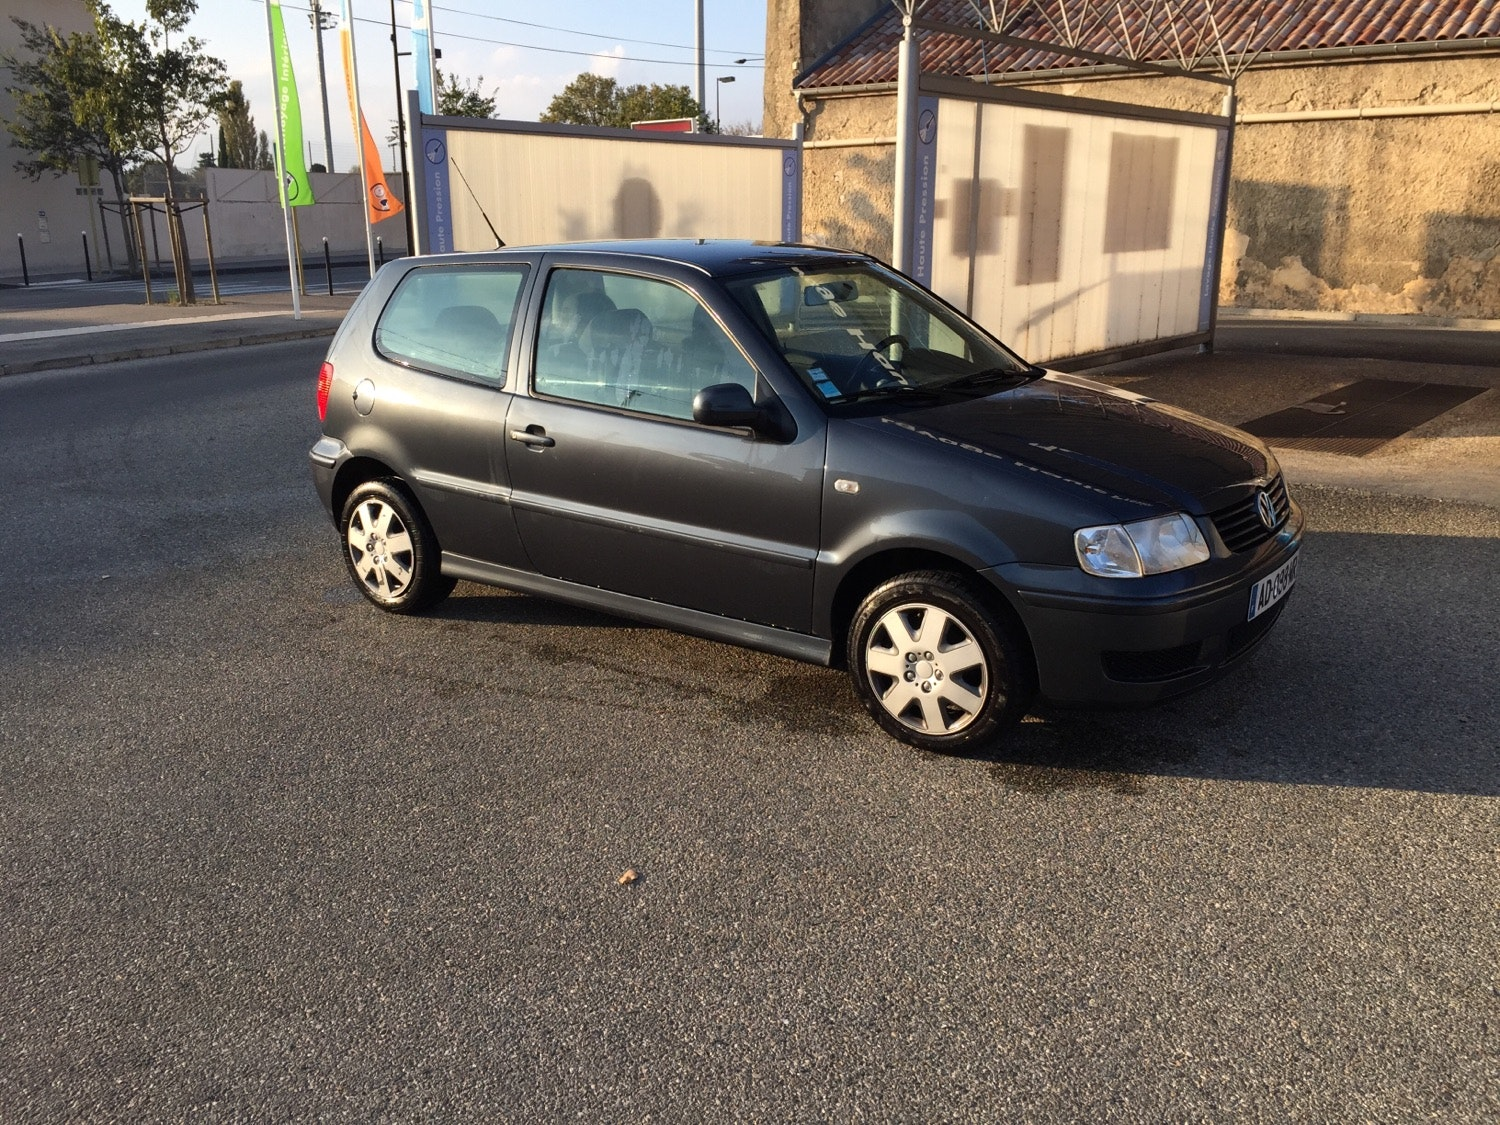 Volkswagen Polo 1.4, 2002, Essence